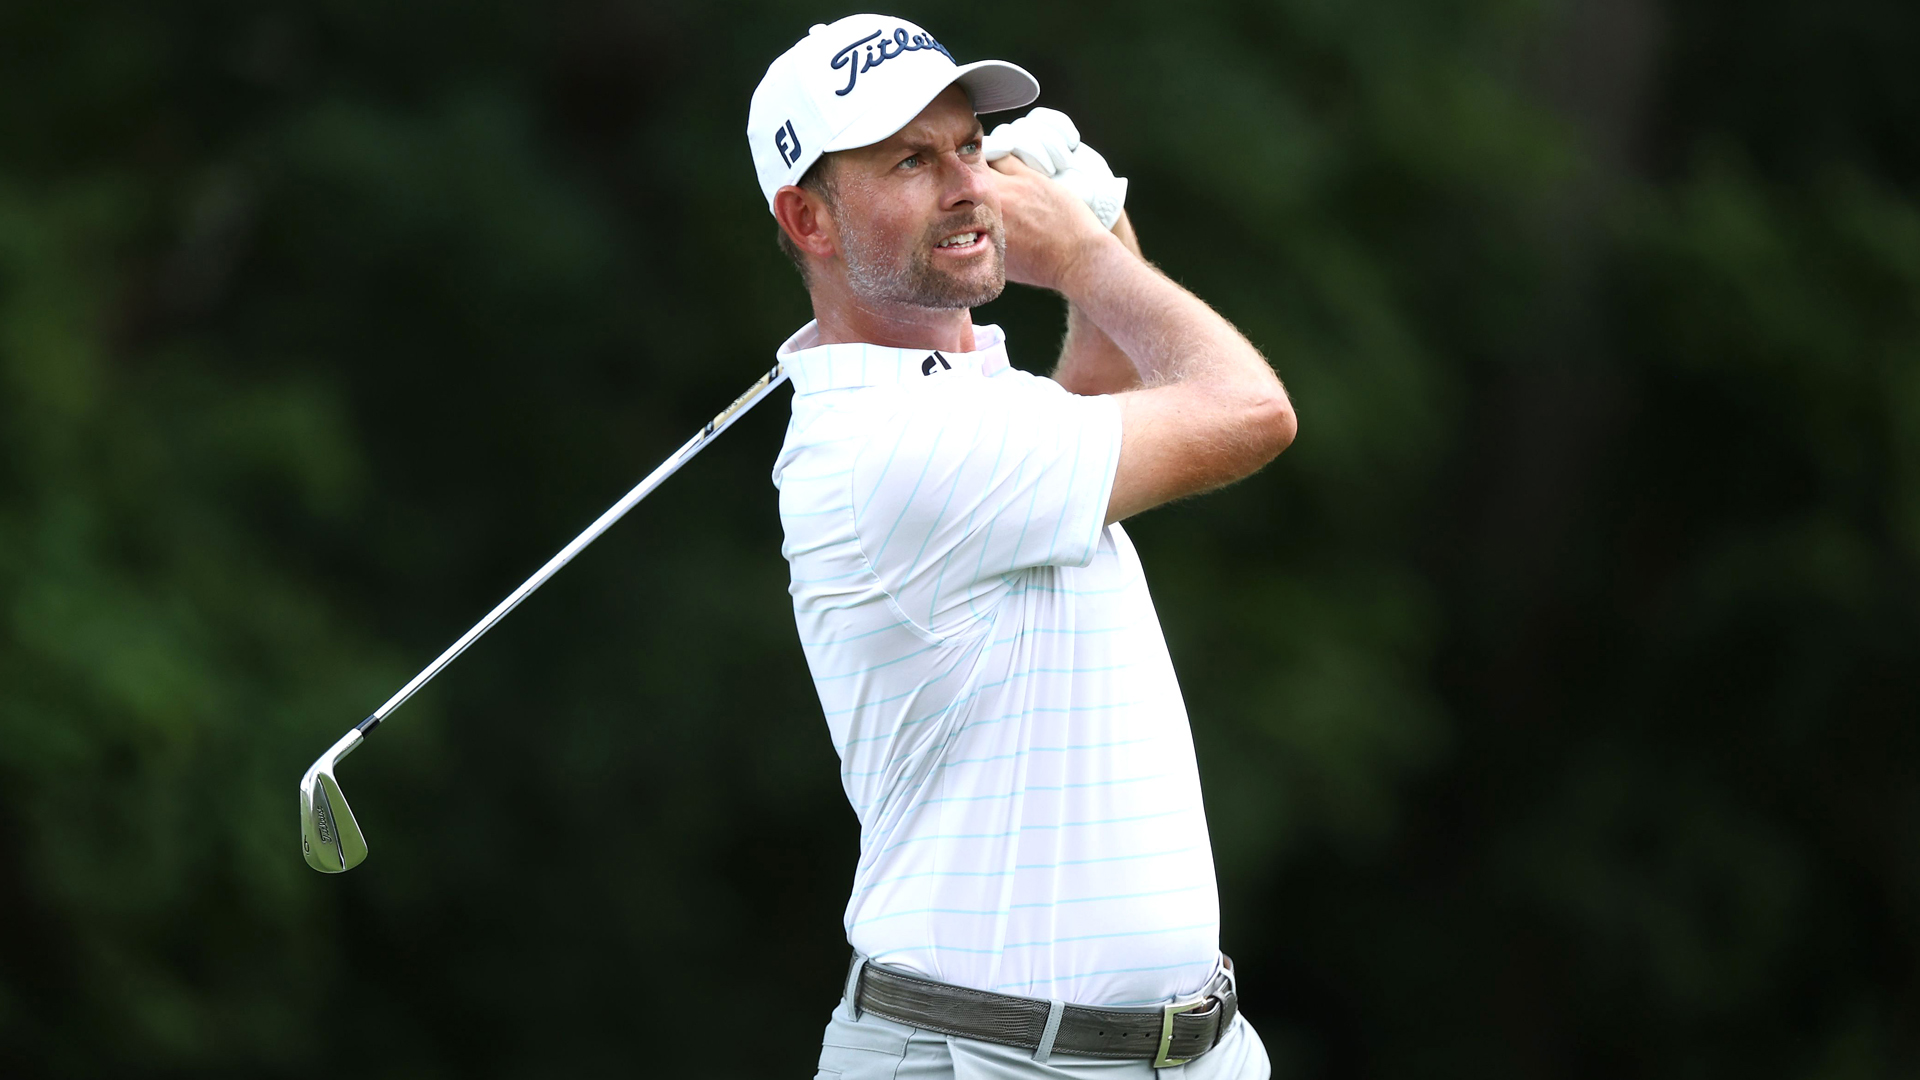 Photo of Webb Simpson in share of lead at Rocket Mortgage Classic